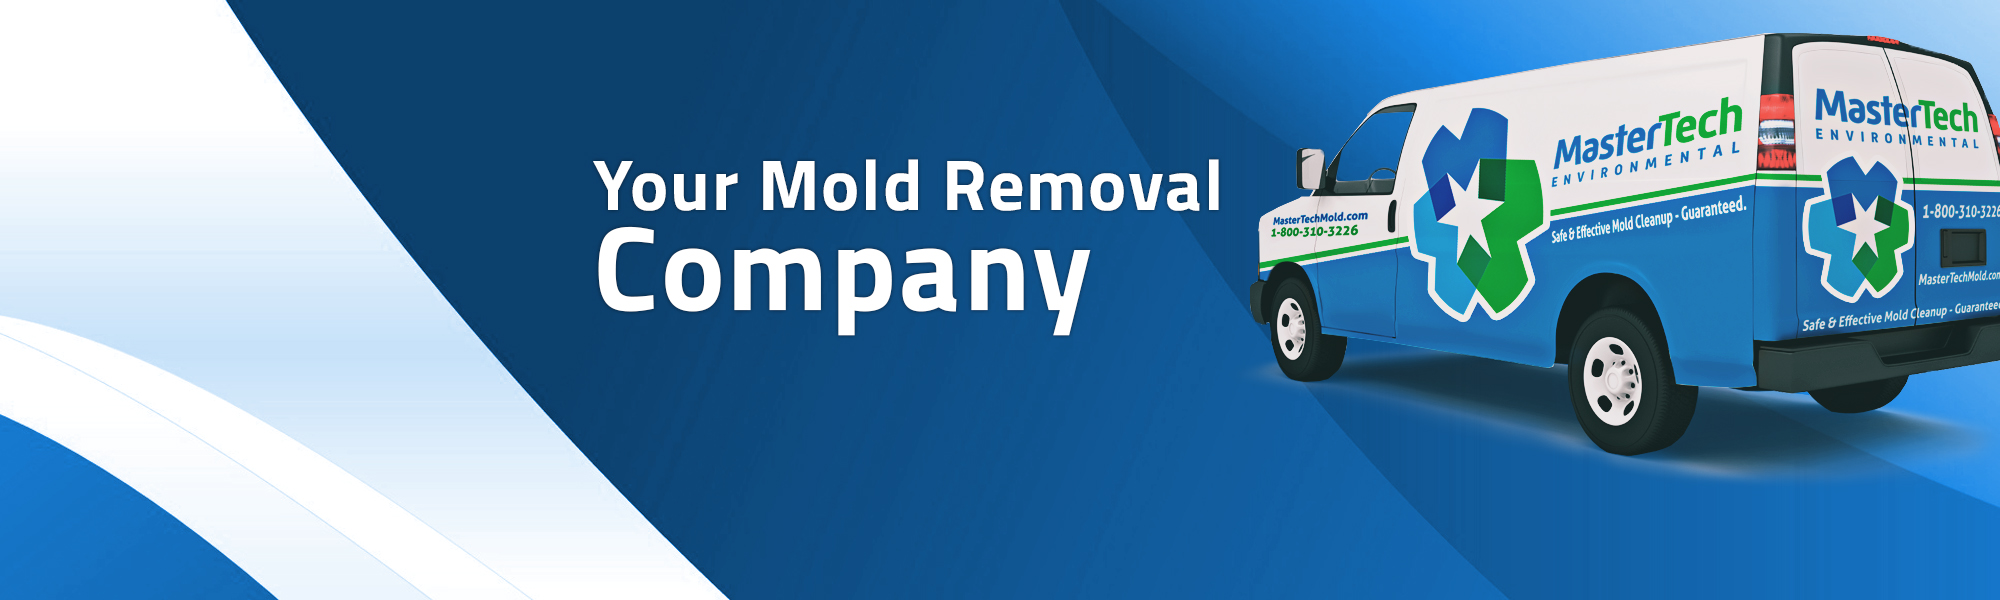 mold removal monmouth county nj